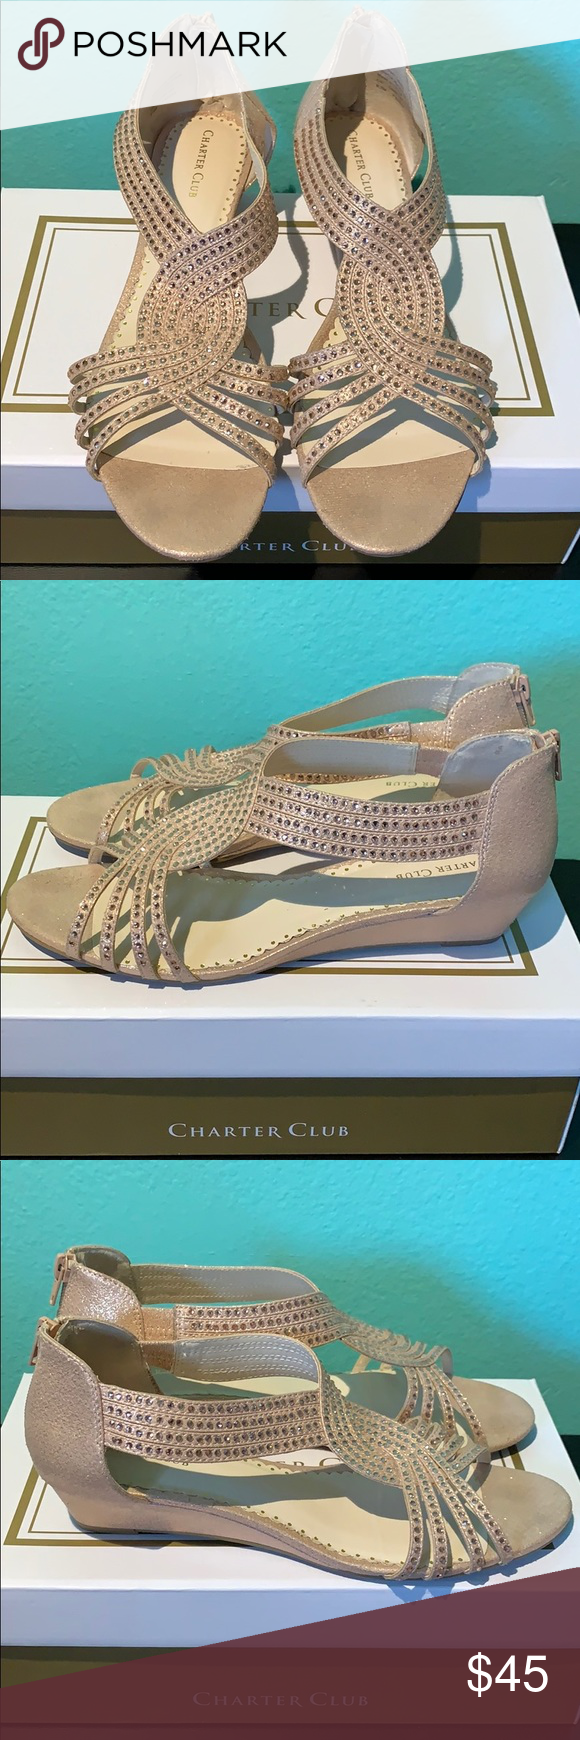 Rose Gold Sparkly Low Wedge Sandals Worn once for a wedding and they are extremely comfortable and practically new! Charter Club Shoes Wedges #lowwedgesandals